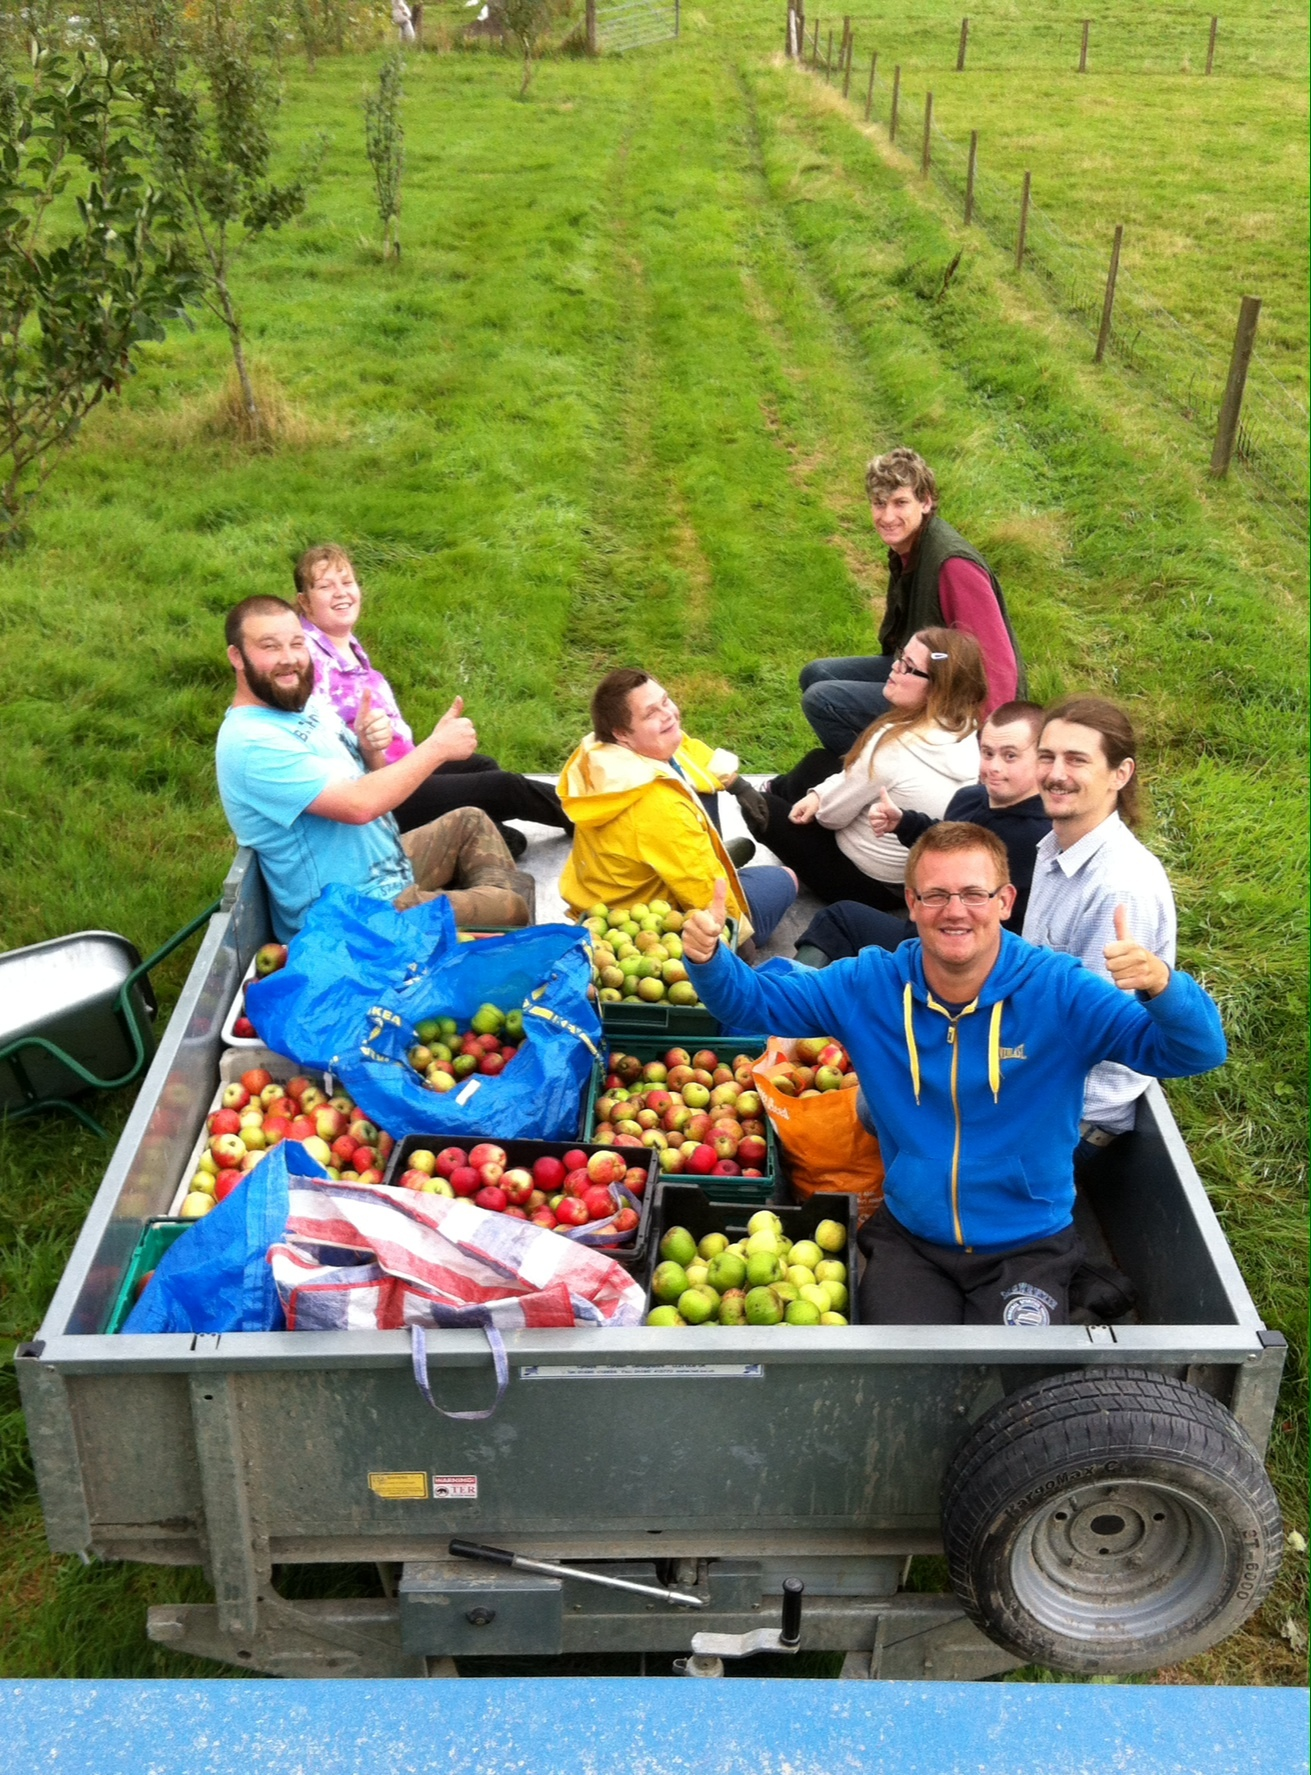 Bringing in the apple harvest at Clynfyw Care Farm